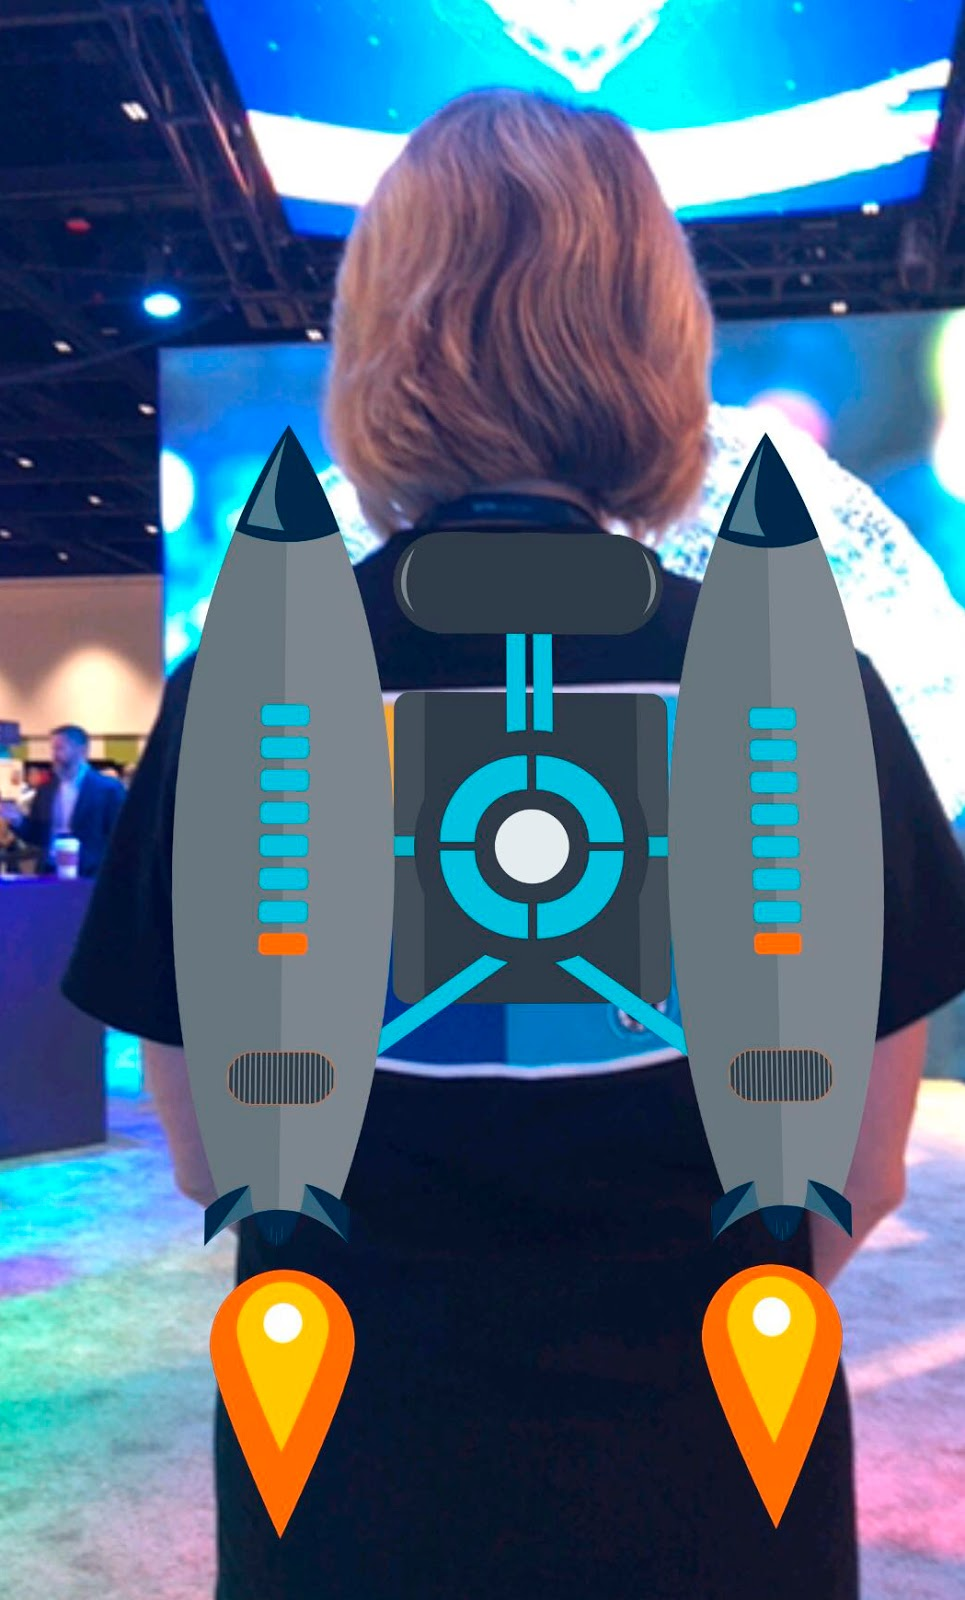 Showcasing augmented reality at Arm TechCon: Gail Hanlon's t-shirt becomes jet propelled when activated by Zappar